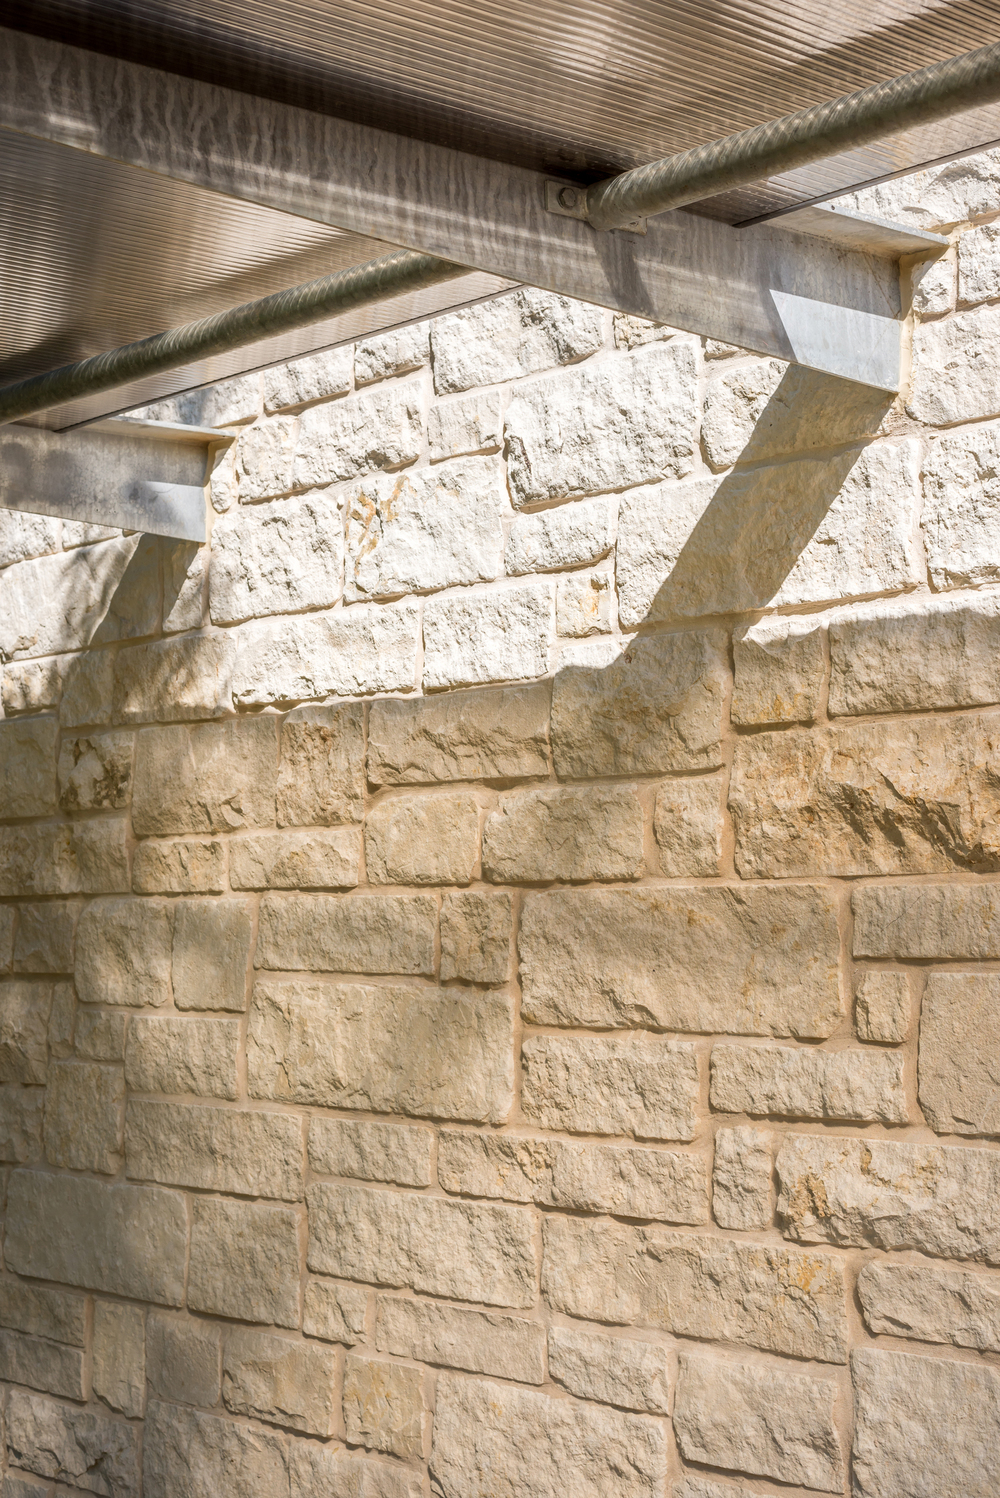 Shadow play with limestone, galvanized outriggers, and the translucent polygal awning.